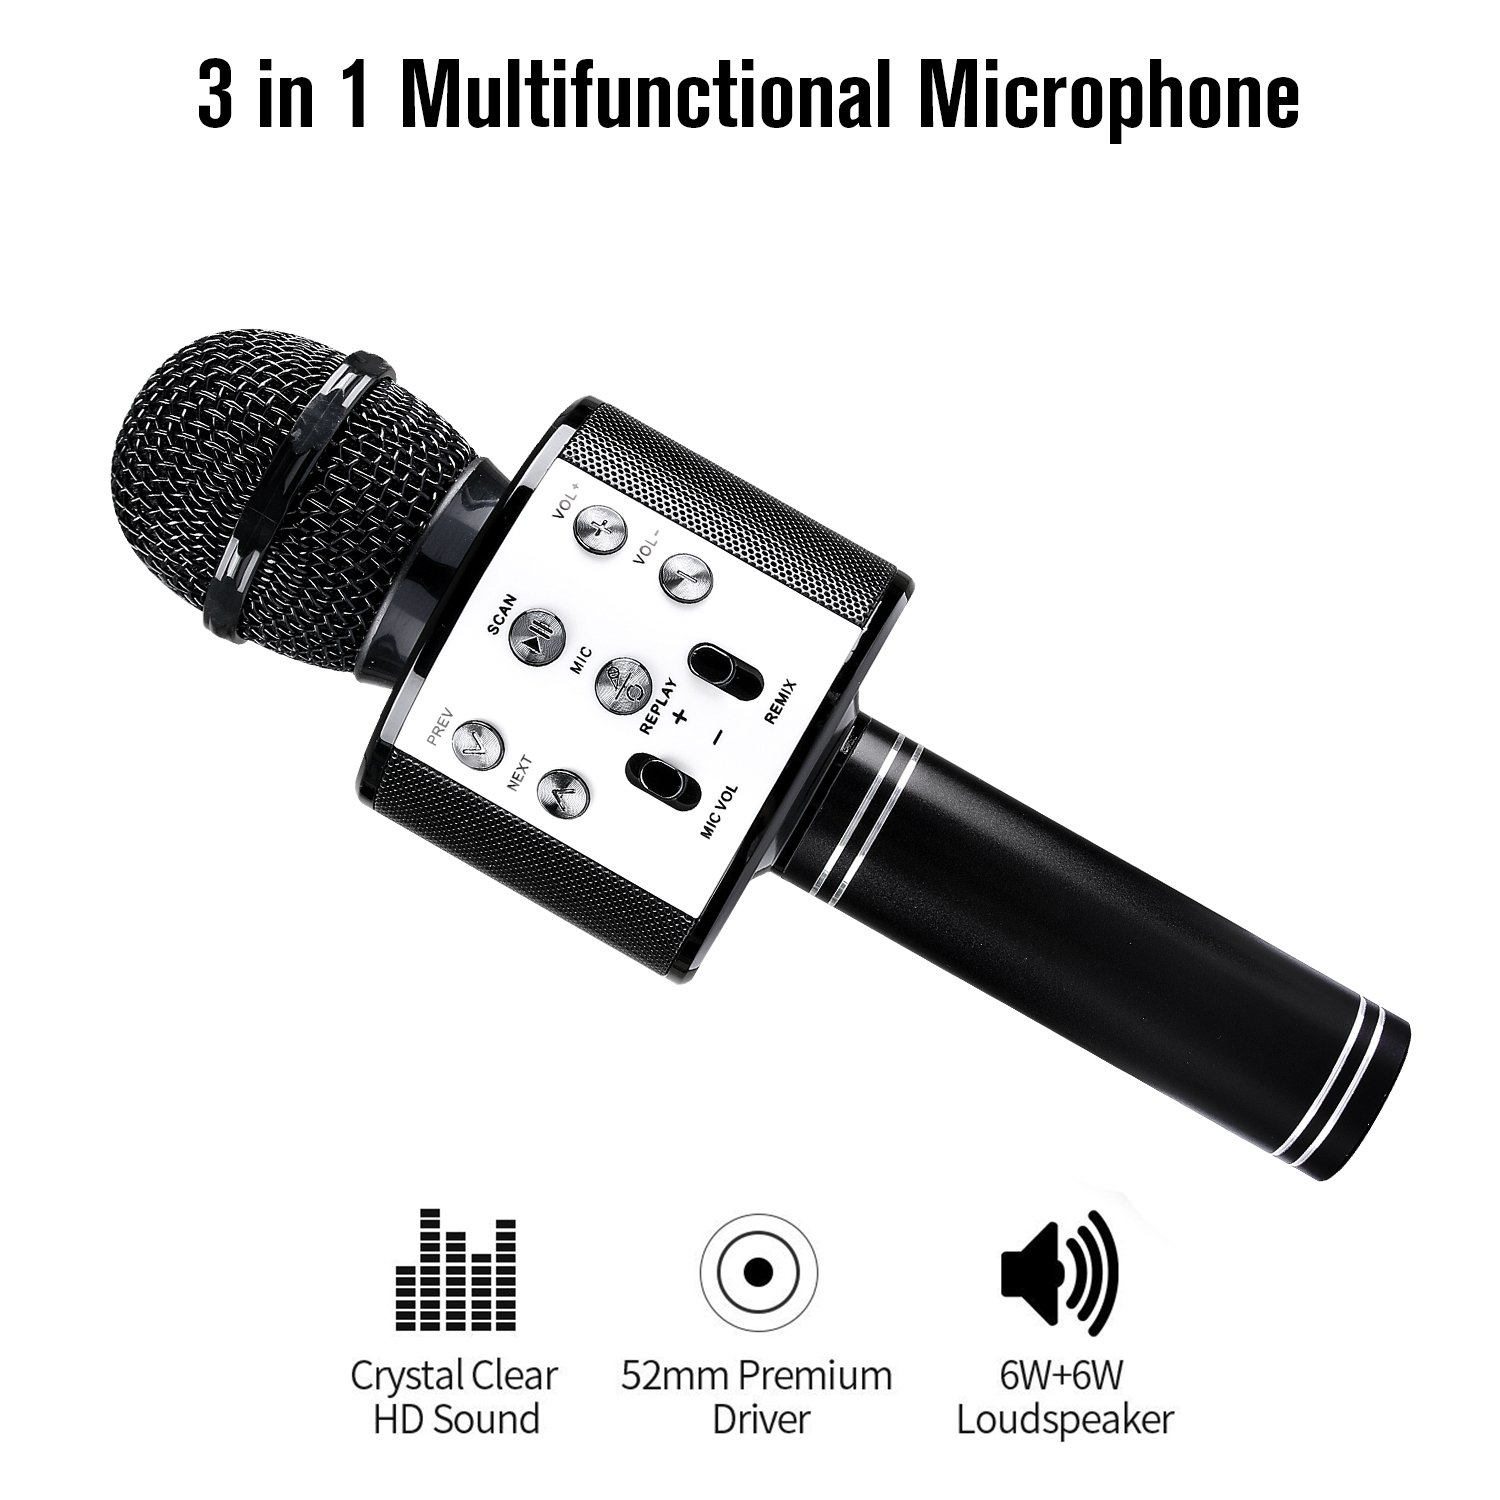 Wireless Bluetooth Karaoke Microphone, Portable Handheld Mic Built-in Speaker With Multi-function Professional Classic-style Karaoke Player for iPhone/Android/Smartphone, Home Party KTV, etc. (Black)